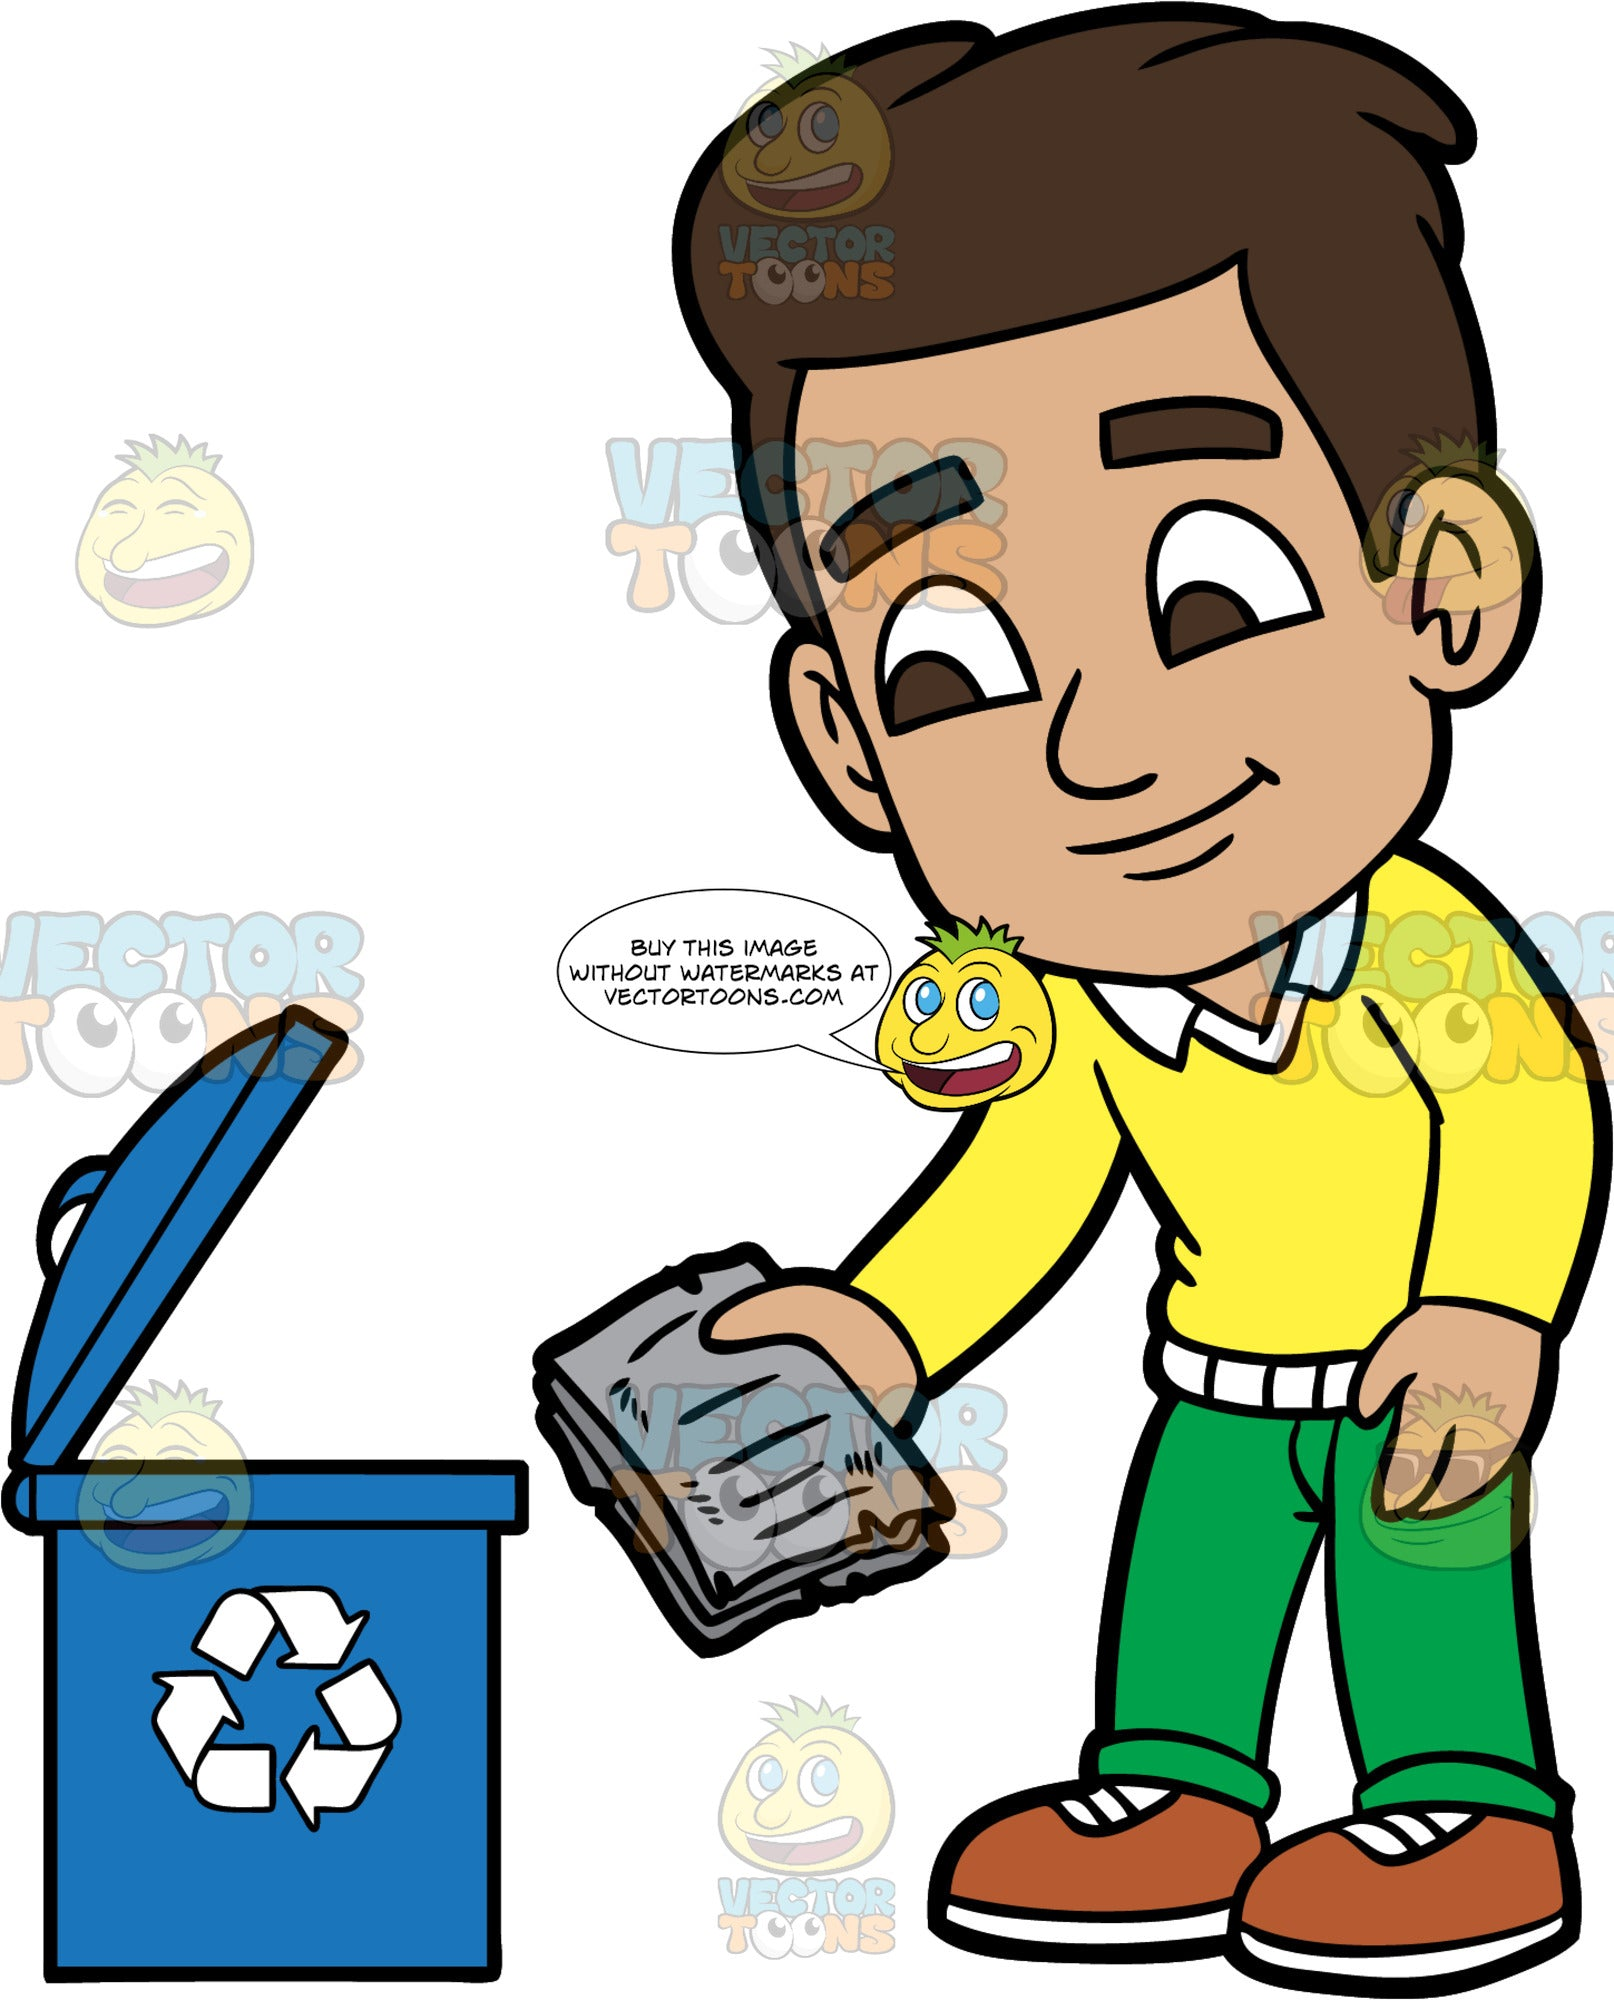 Young Gabriel Putting Some Newspapers Into A Recycling Bin. A Hispanic boy wearing green pants, a yellow sweater, and brown shoes, putting some old newspapers into a blue bin with a recycling logo on it